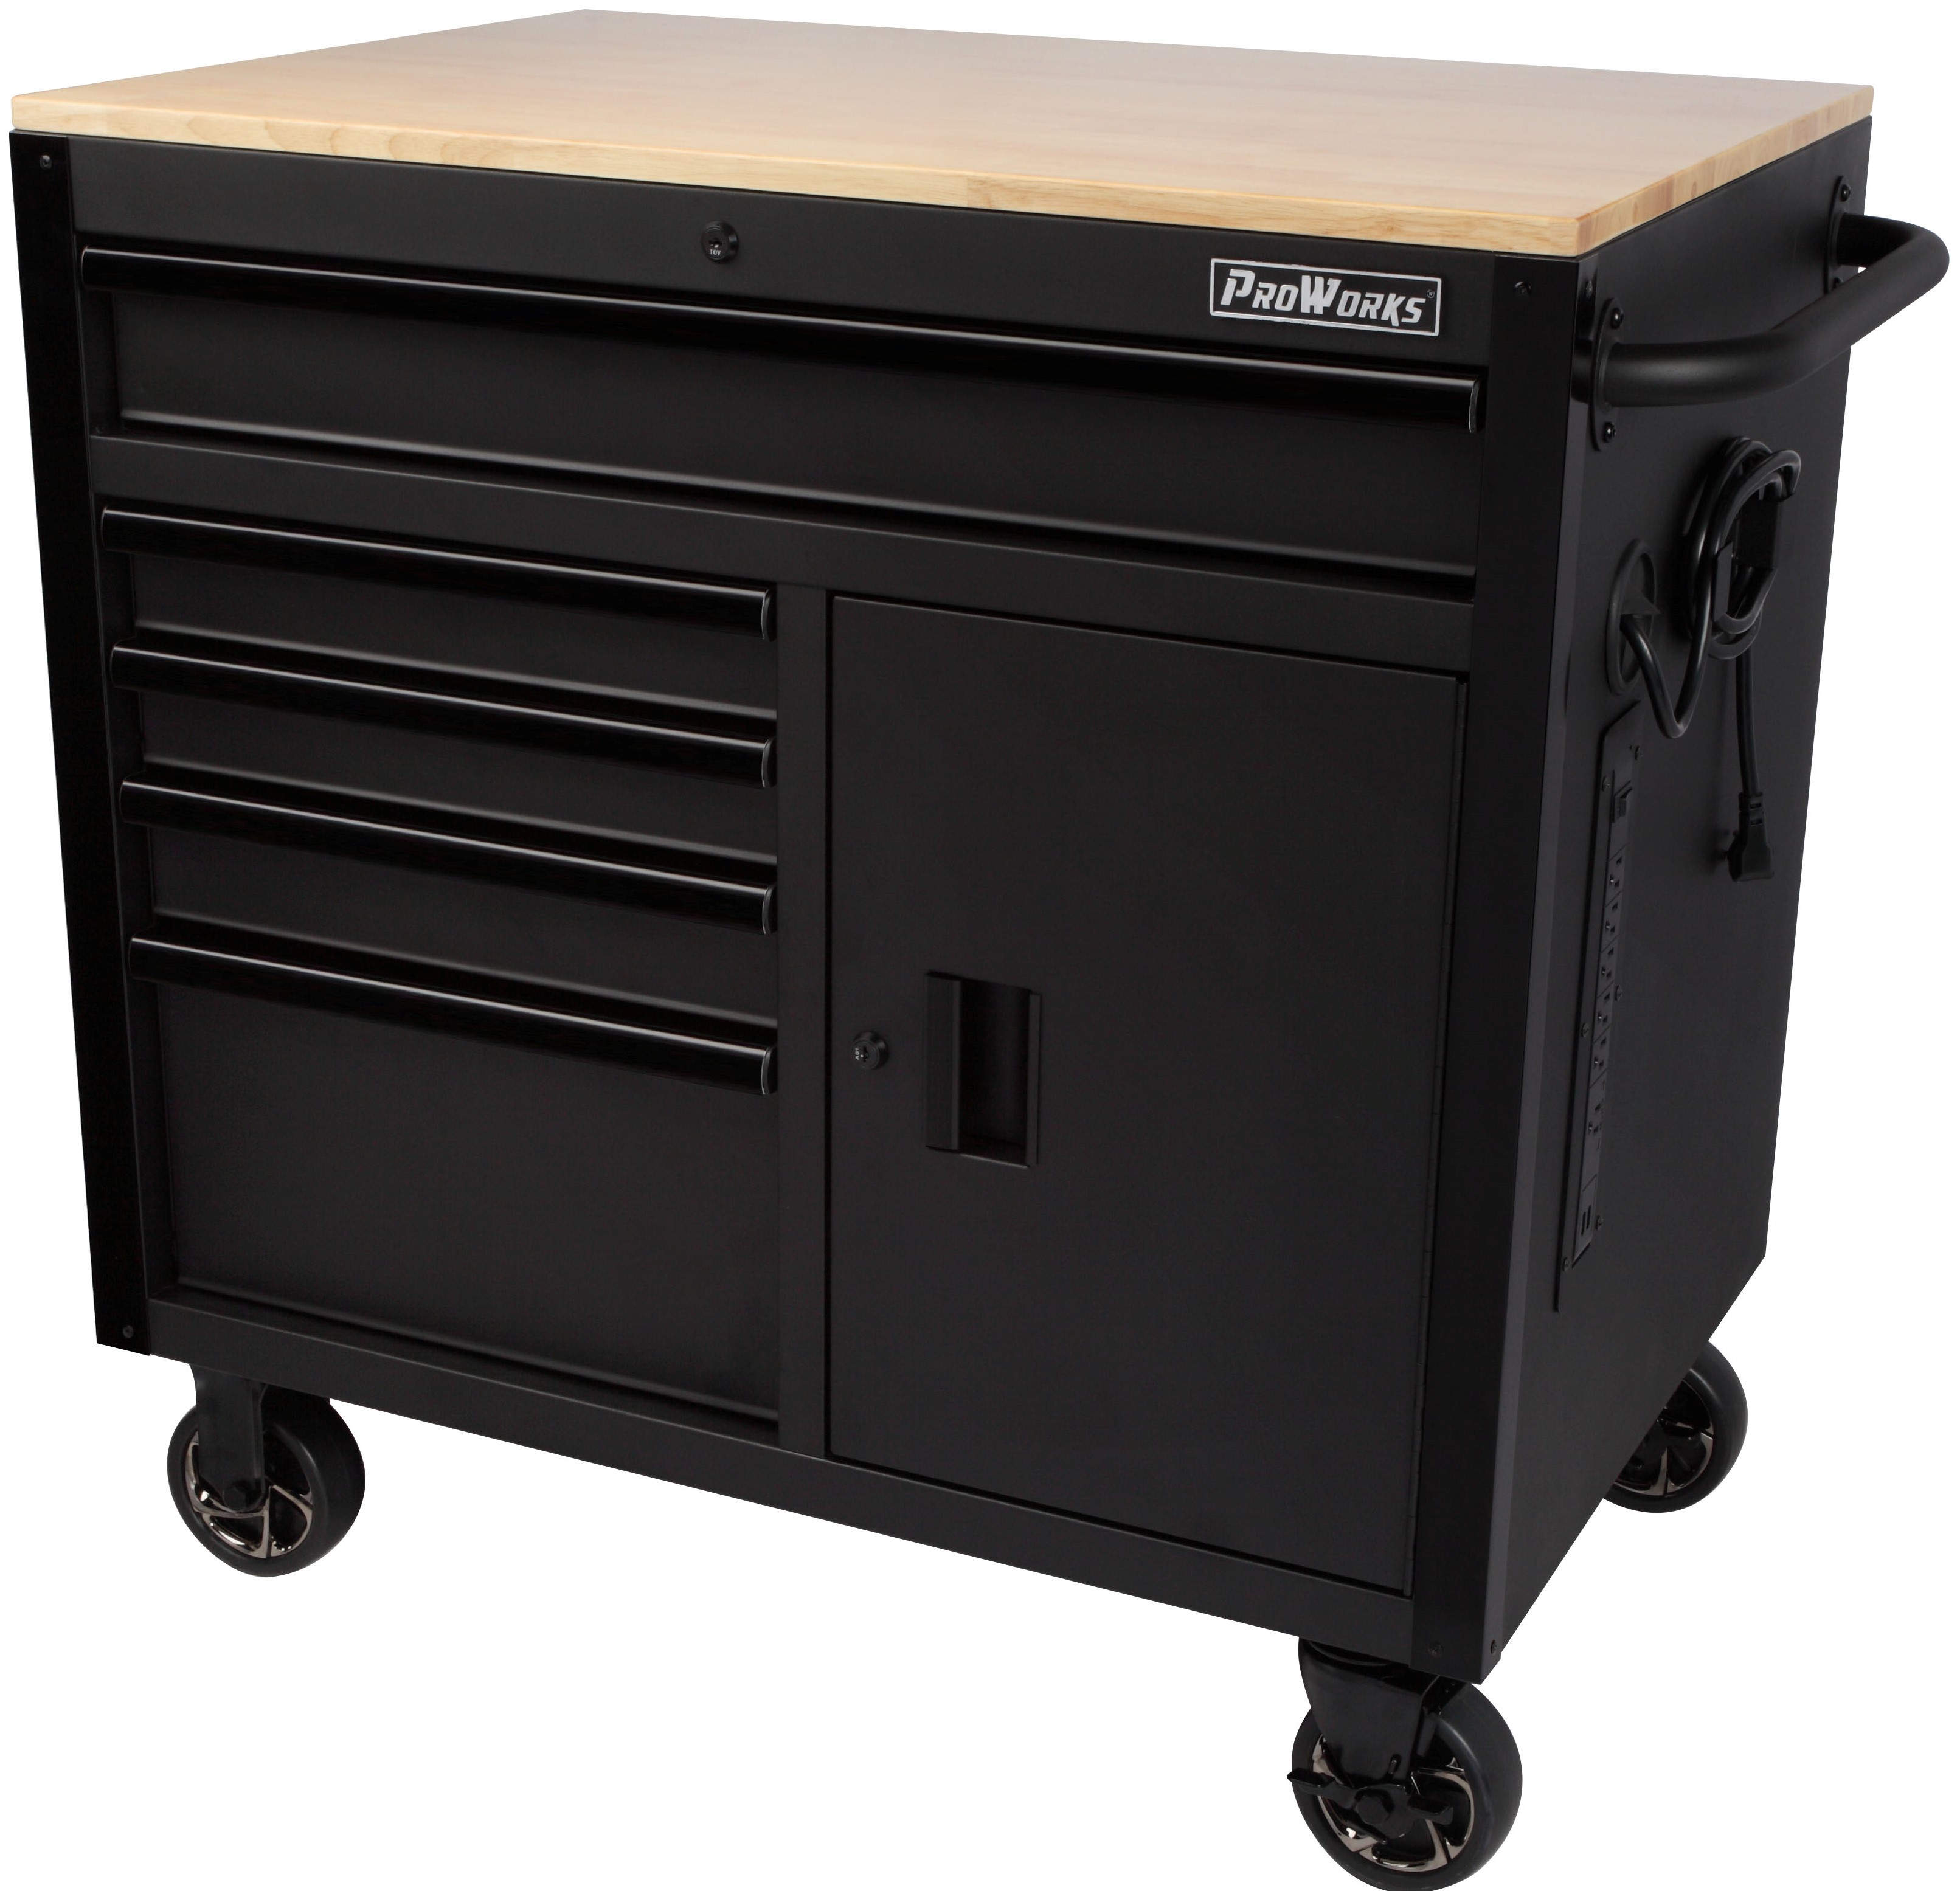 Wondrous Proworks 36 Inch W X 24 5 Inch D 5 Drawer 1 Door Mobile Tool Ibusinesslaw Wood Chair Design Ideas Ibusinesslaworg